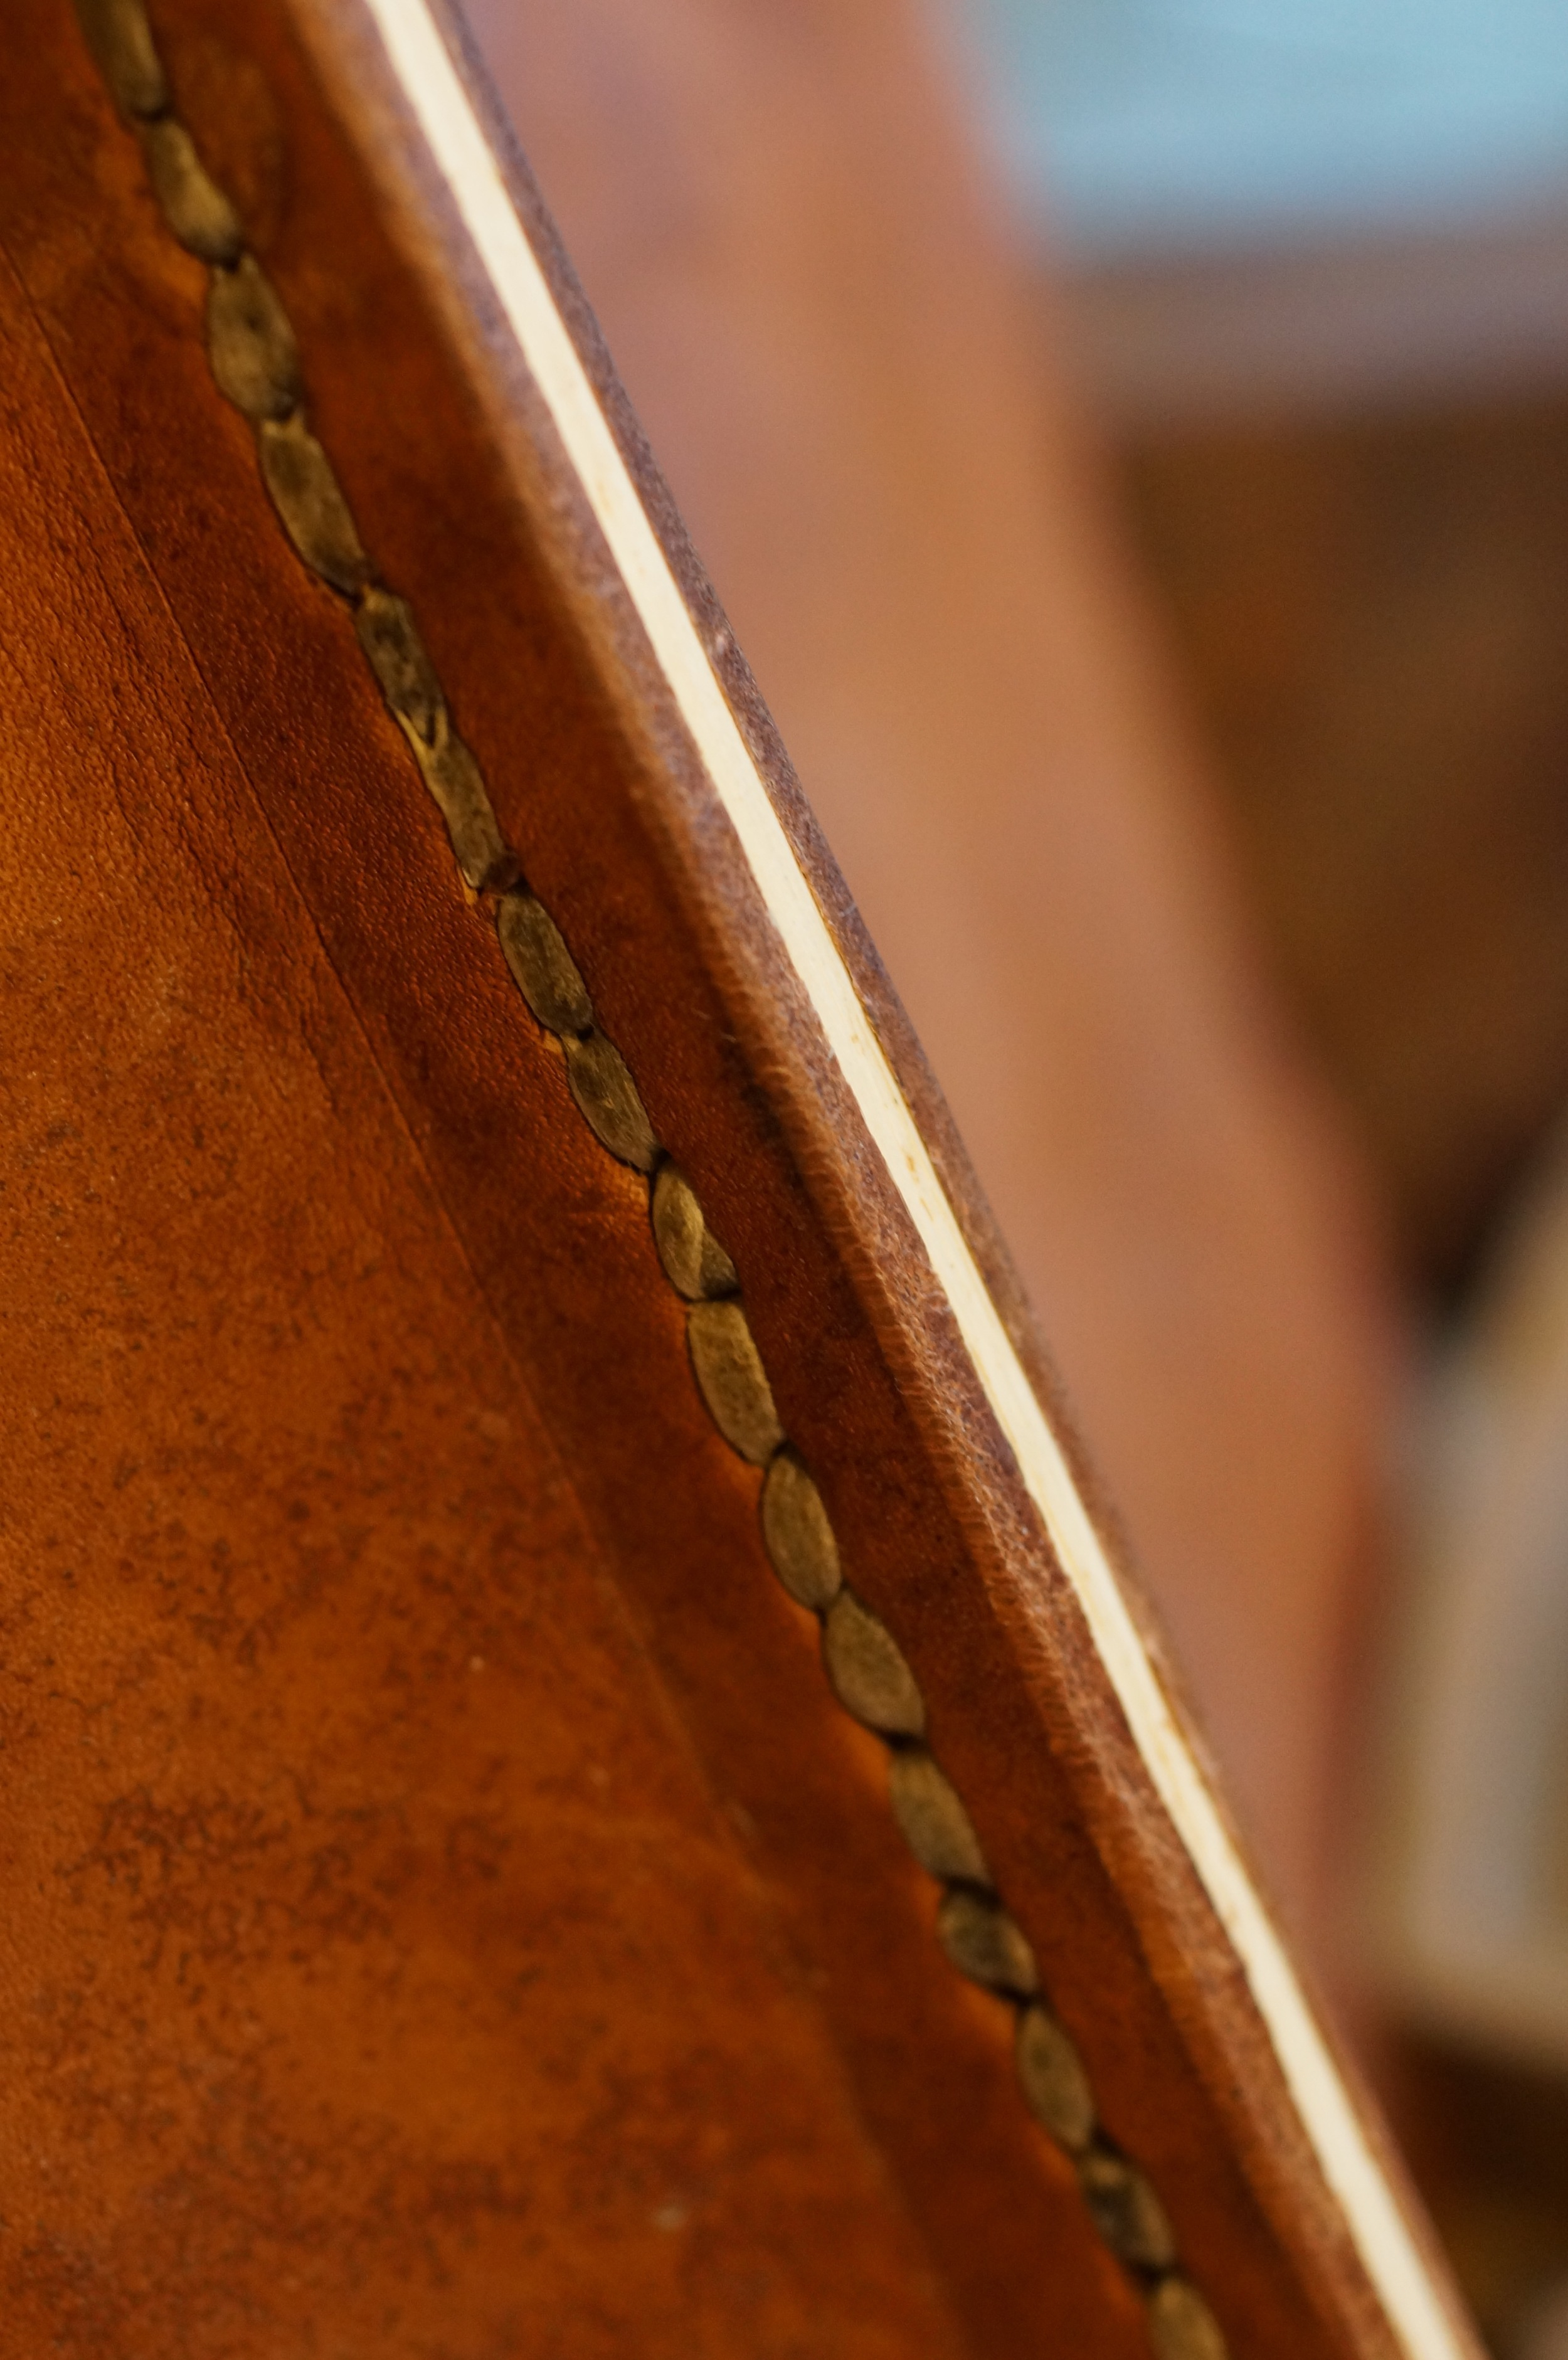 A wood and leather seam with rawhide stitching. An experiment for another abandoned project.